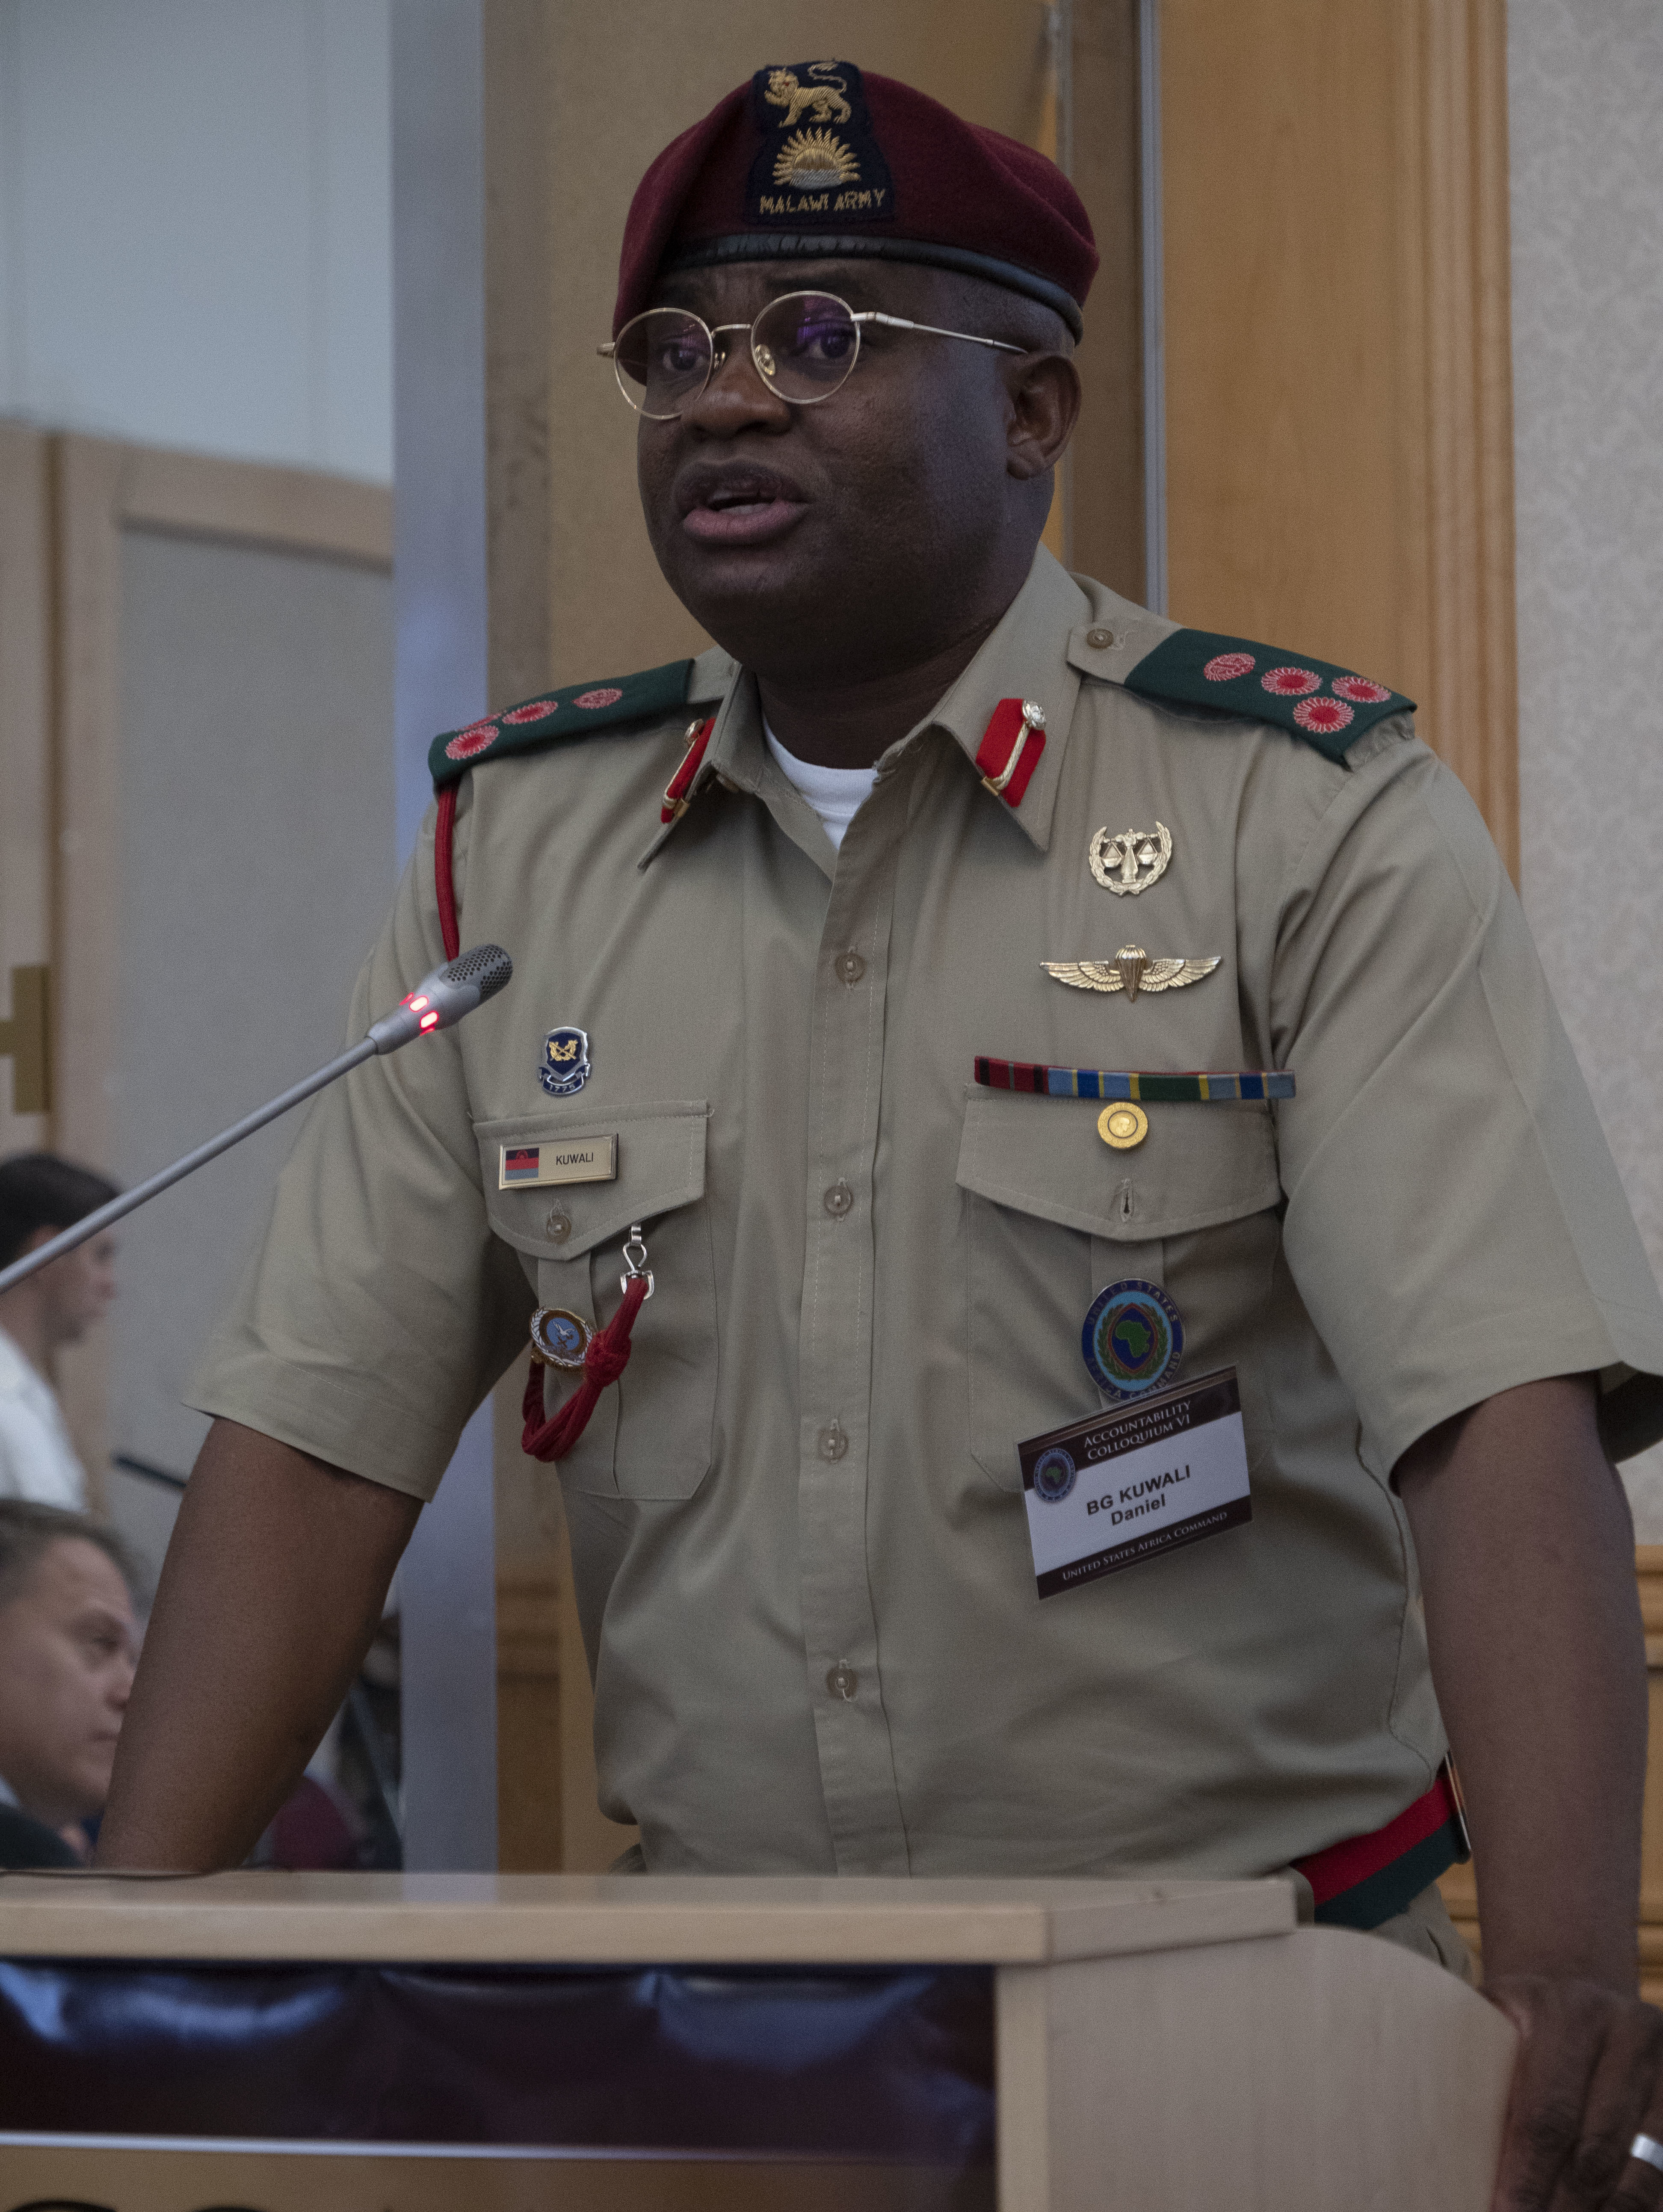 Brigadier General Dan Kuwali of the Malawi Defense Force gives the overview of the Program Goals at the beginning of Accountability Colloquium VI, held in Lilongwe, Malawi, on February 26, 2019. The Accountability Colloquium seeks to address issues related to accountability under the Law of Armed Conflict, as well as facilitate discussions related to military justice, command responsibility, and United Nations and African military operations. (DoD Photo by U.S. Army Sergeant Edward A. Salcedo)